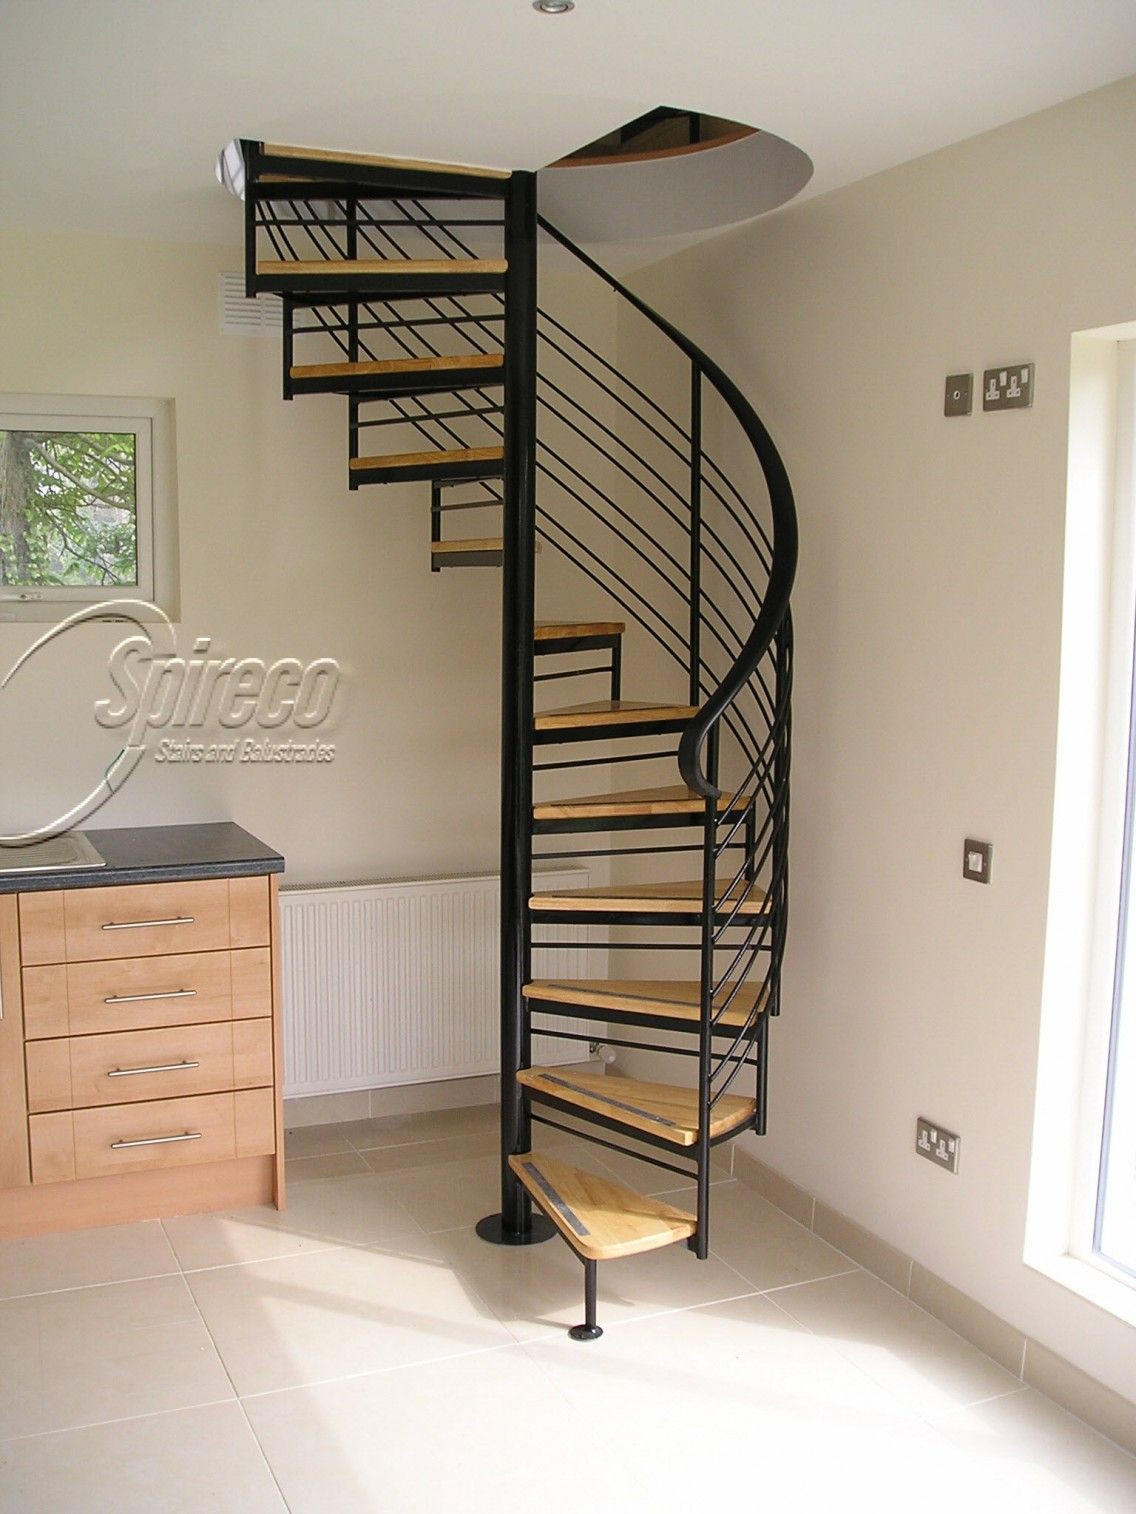 Designing Stairs for the attic 13 Amusing Stair Ladder Design Digital Image Ideas